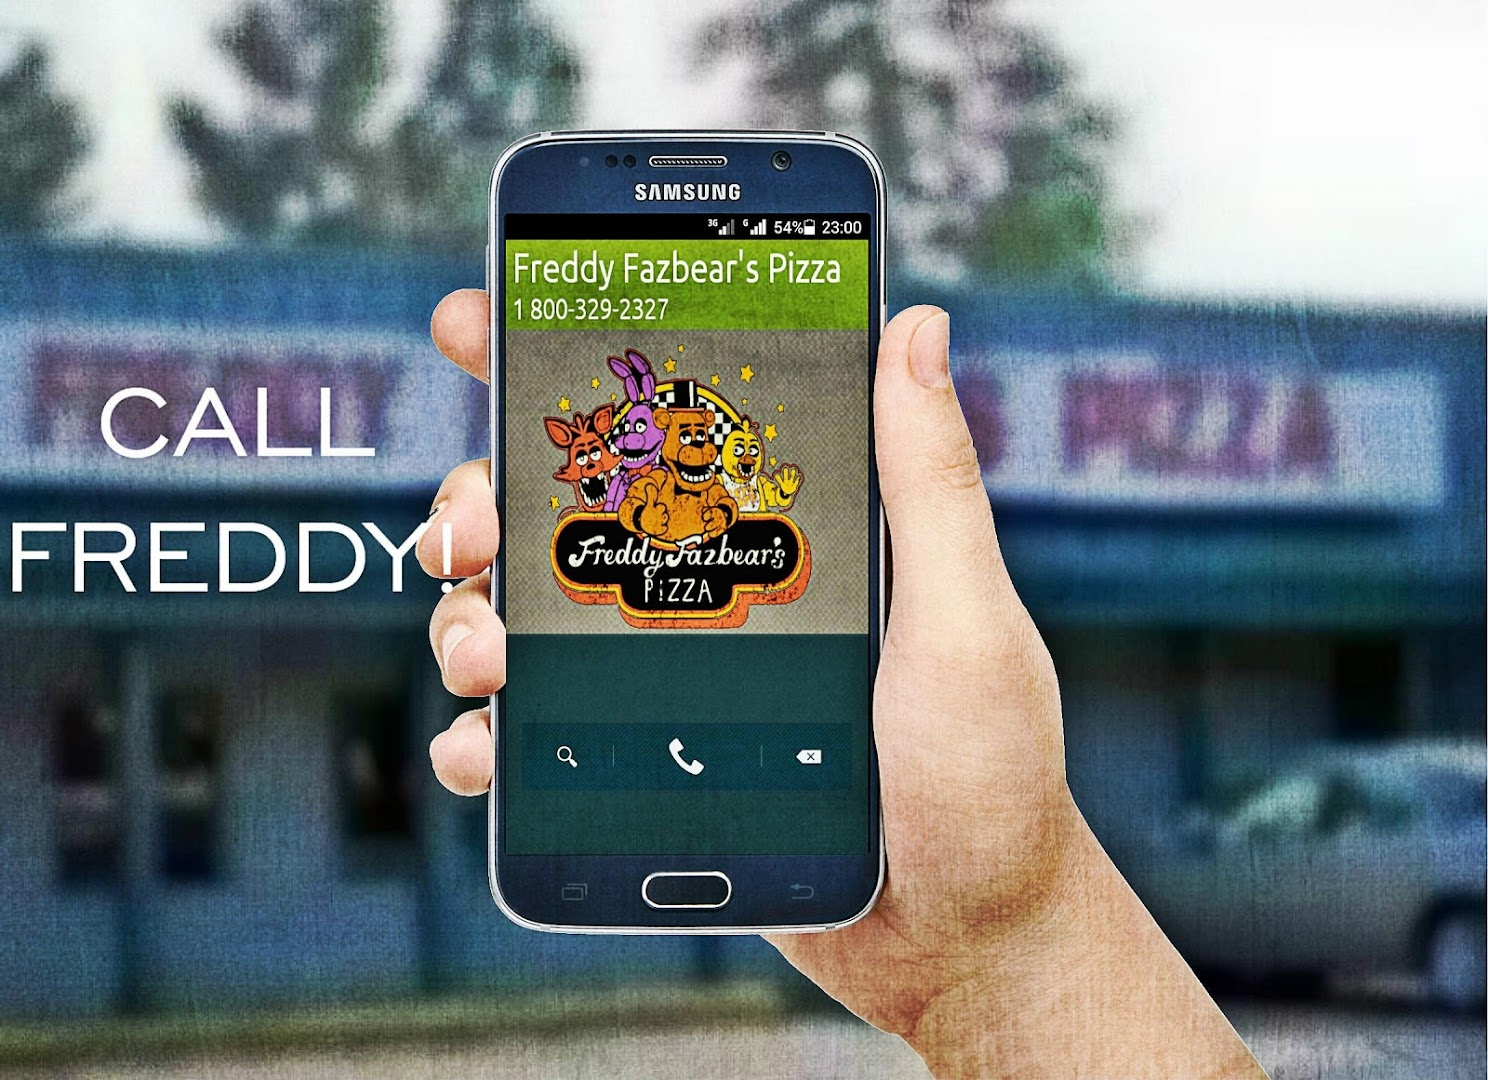 Phone number for freddy fazbears pizzaria - Phone